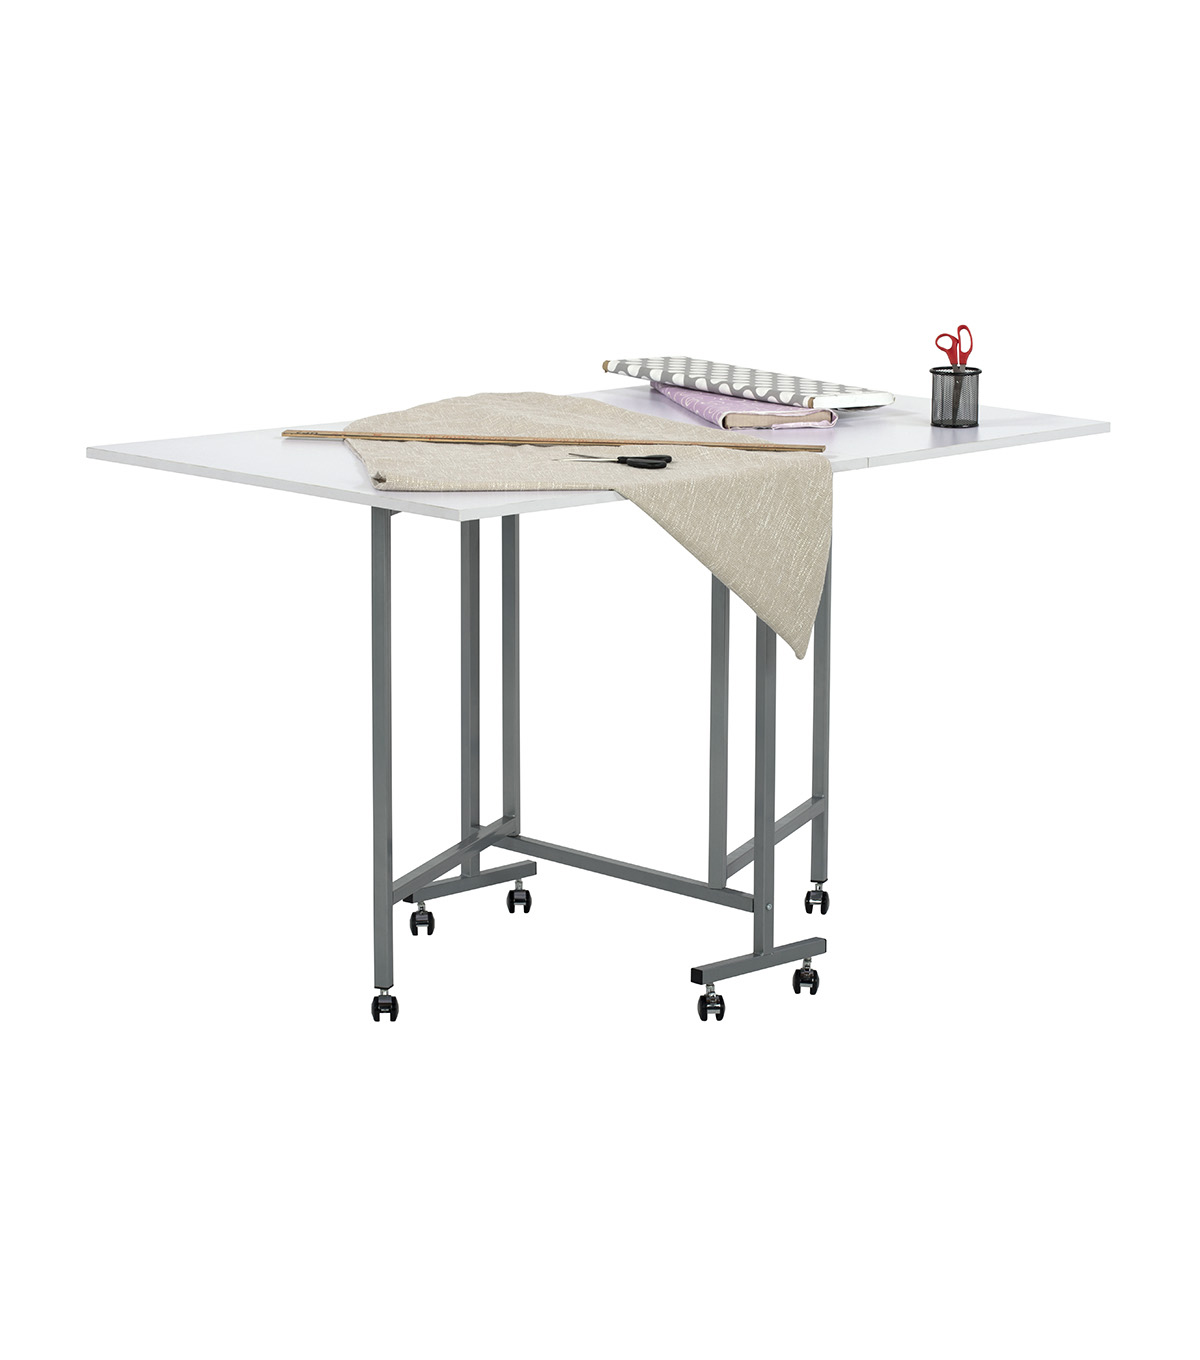 Studio Designs Sew Ready Craft & Cutting Table-Silver/White